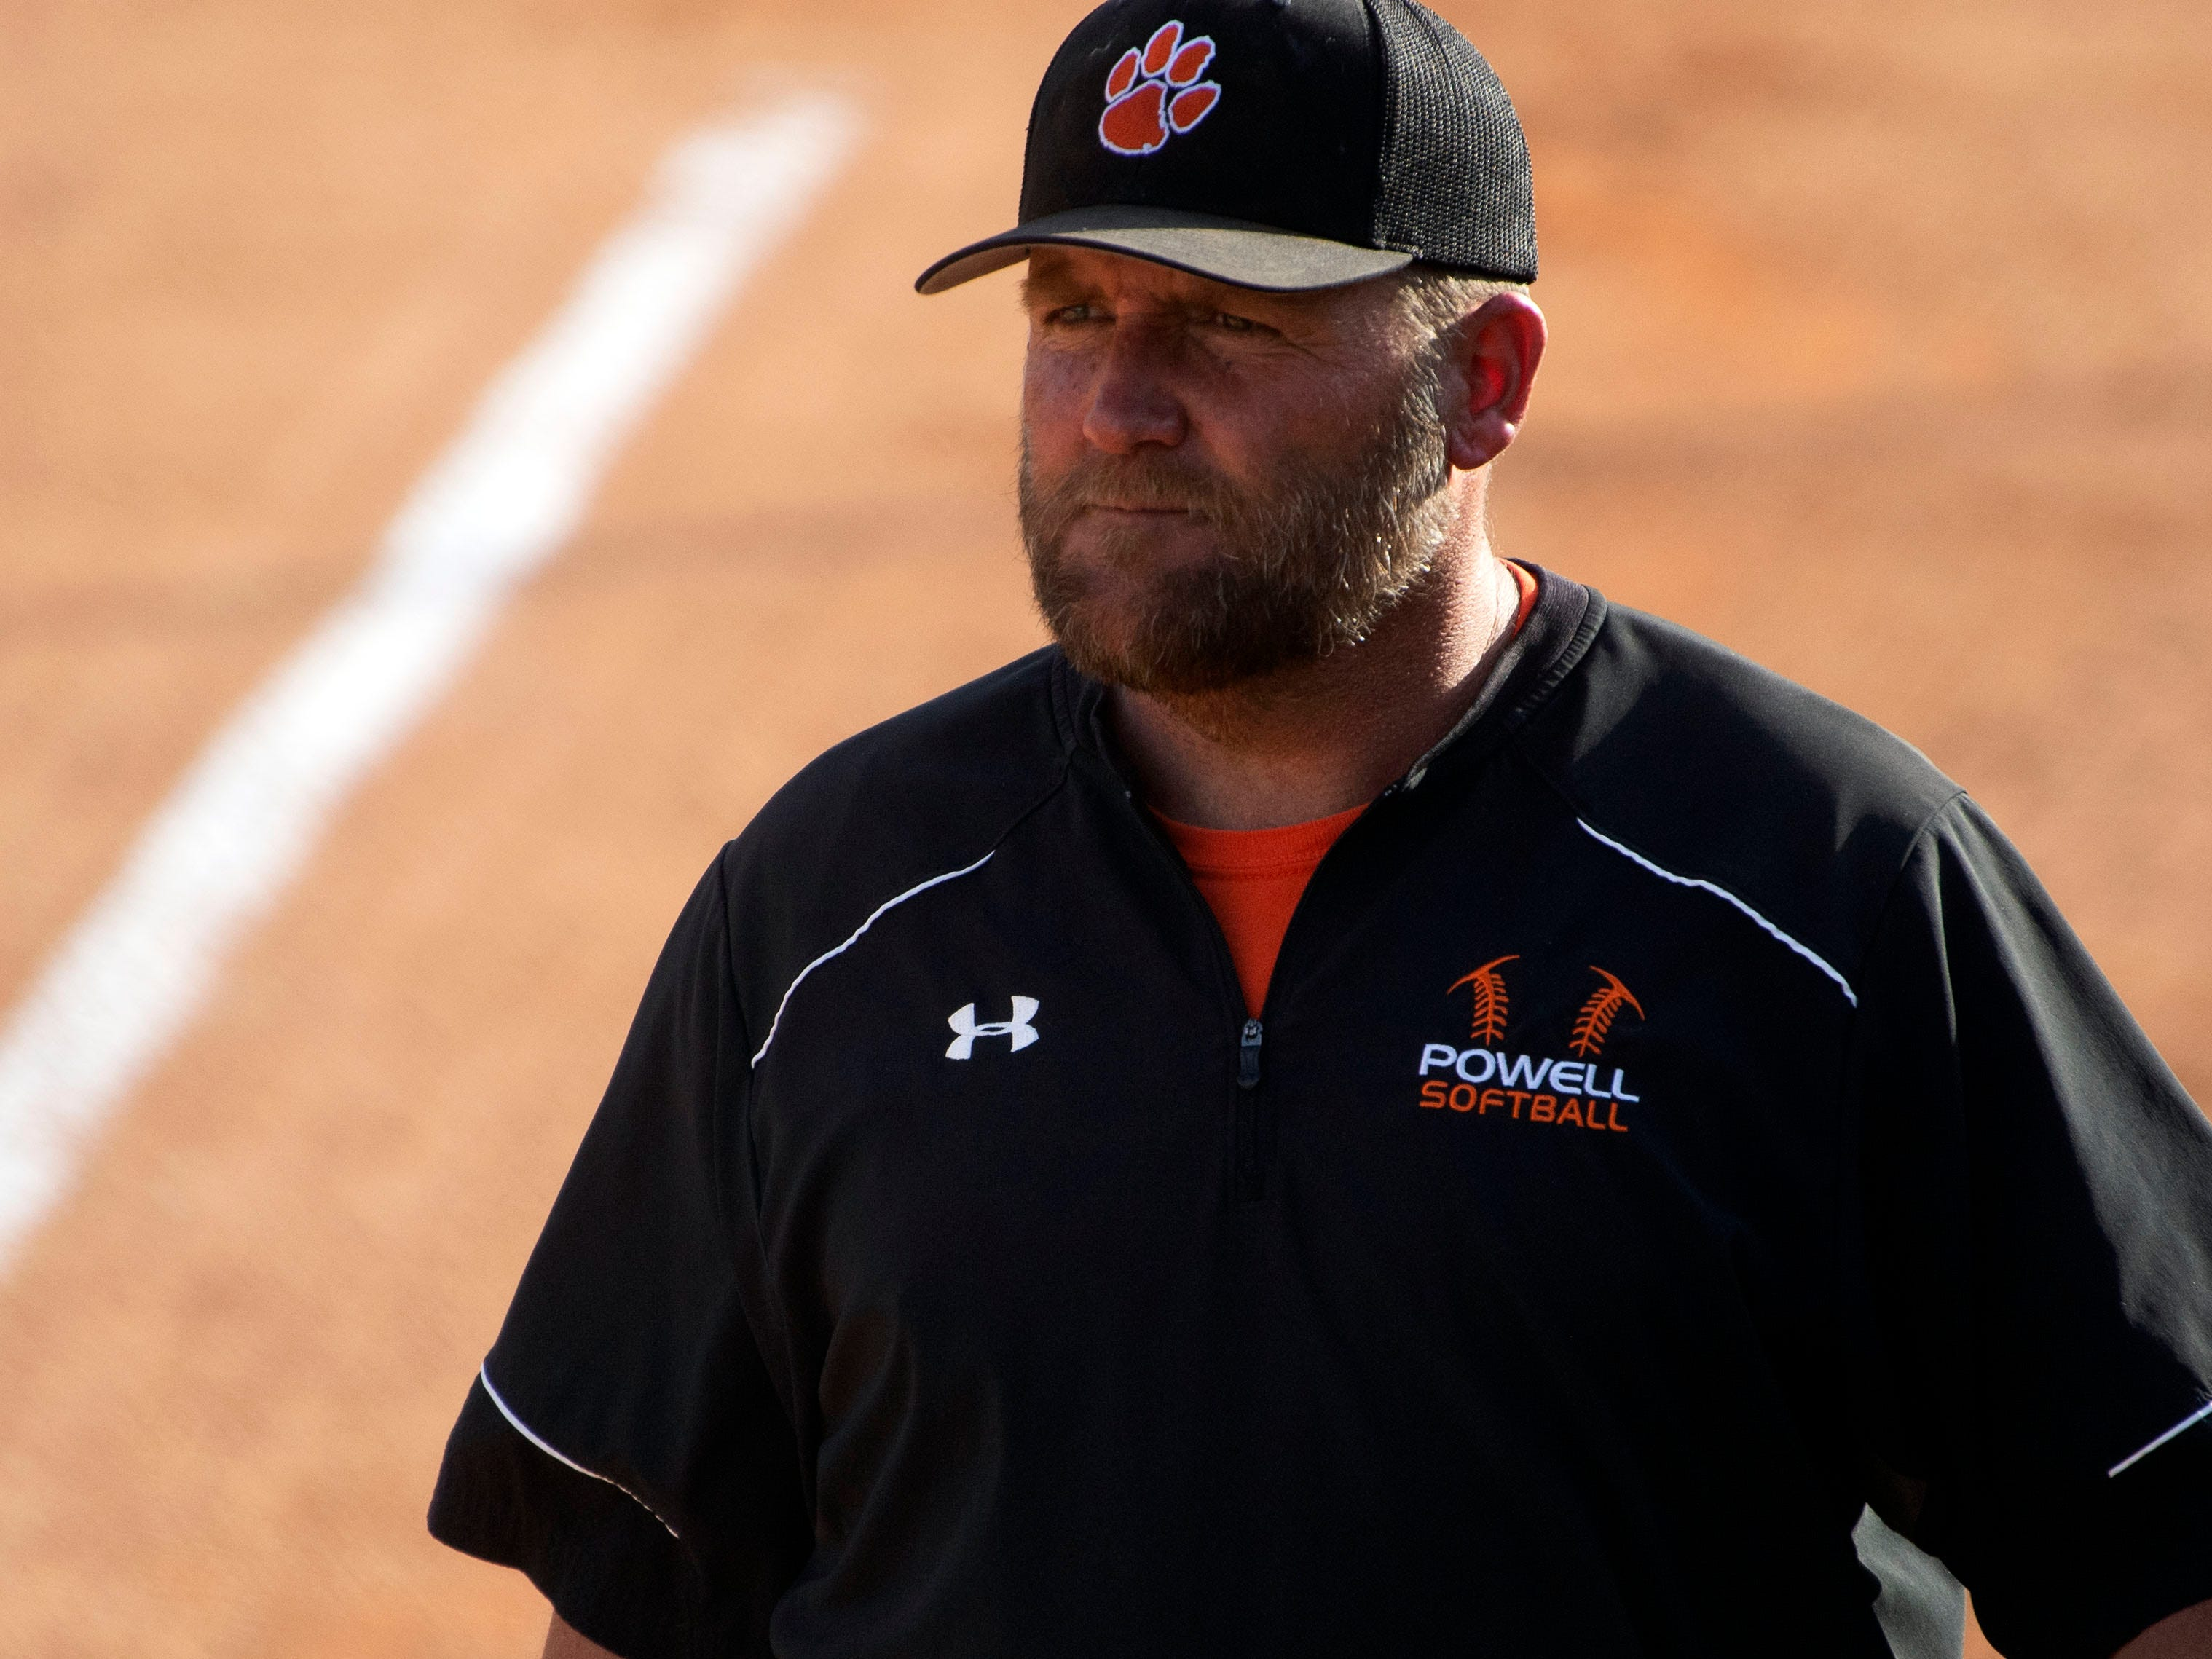 Powell softball coach Jeff Inman during the team's first game at home on Thursday, April 11, 2019 after heavy rains destroyed their home field.